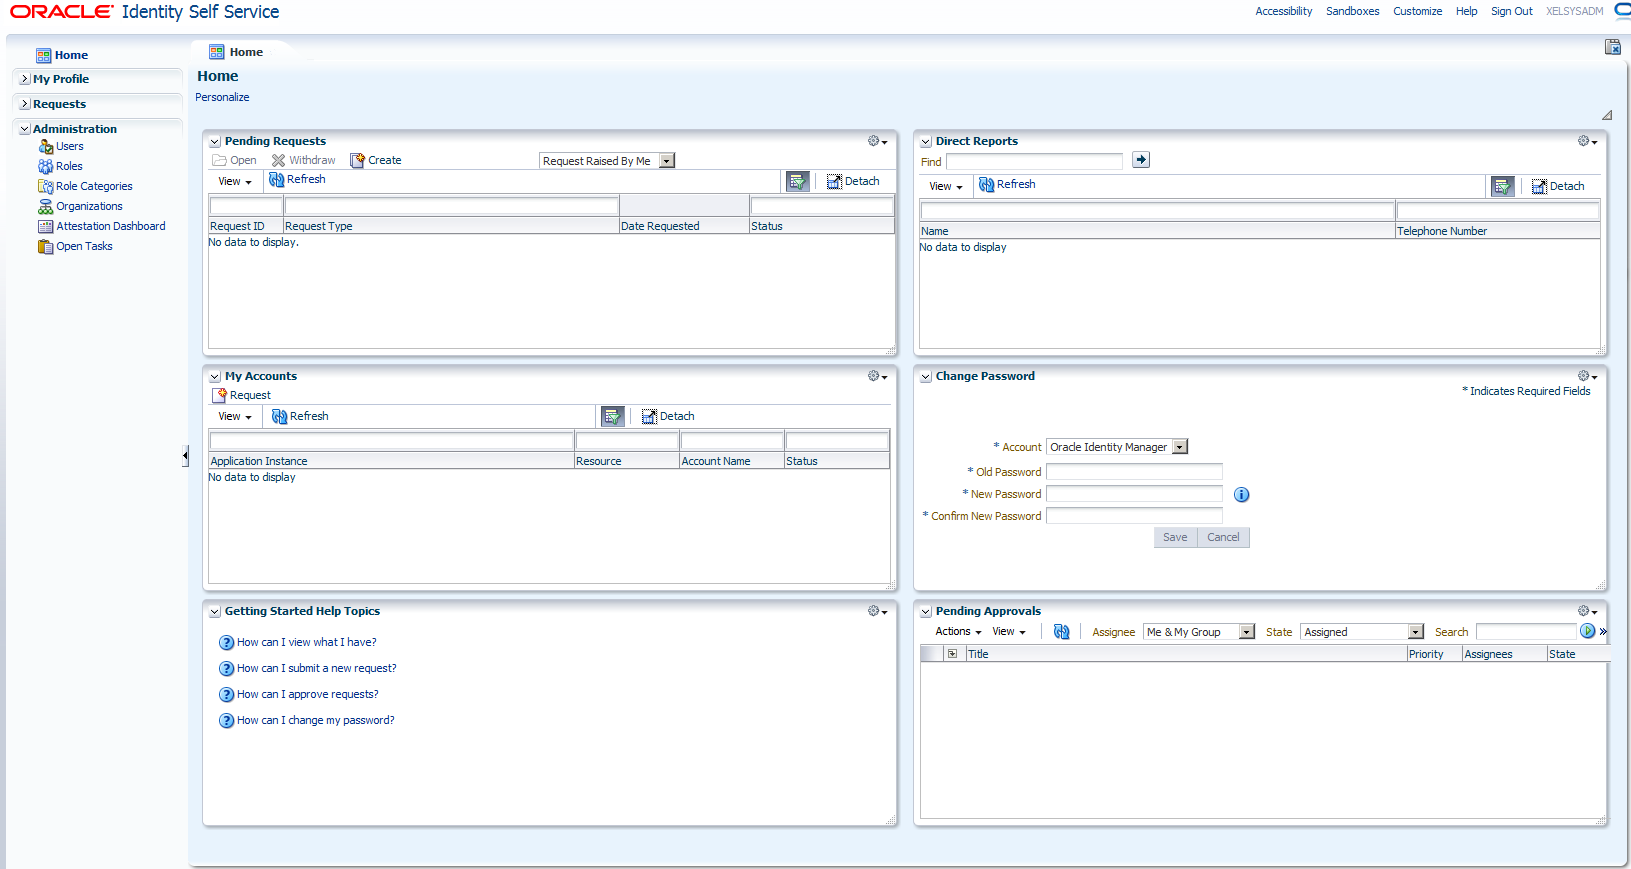 How Oracle Identity Manager 11g Release 2 Works on the Presentation